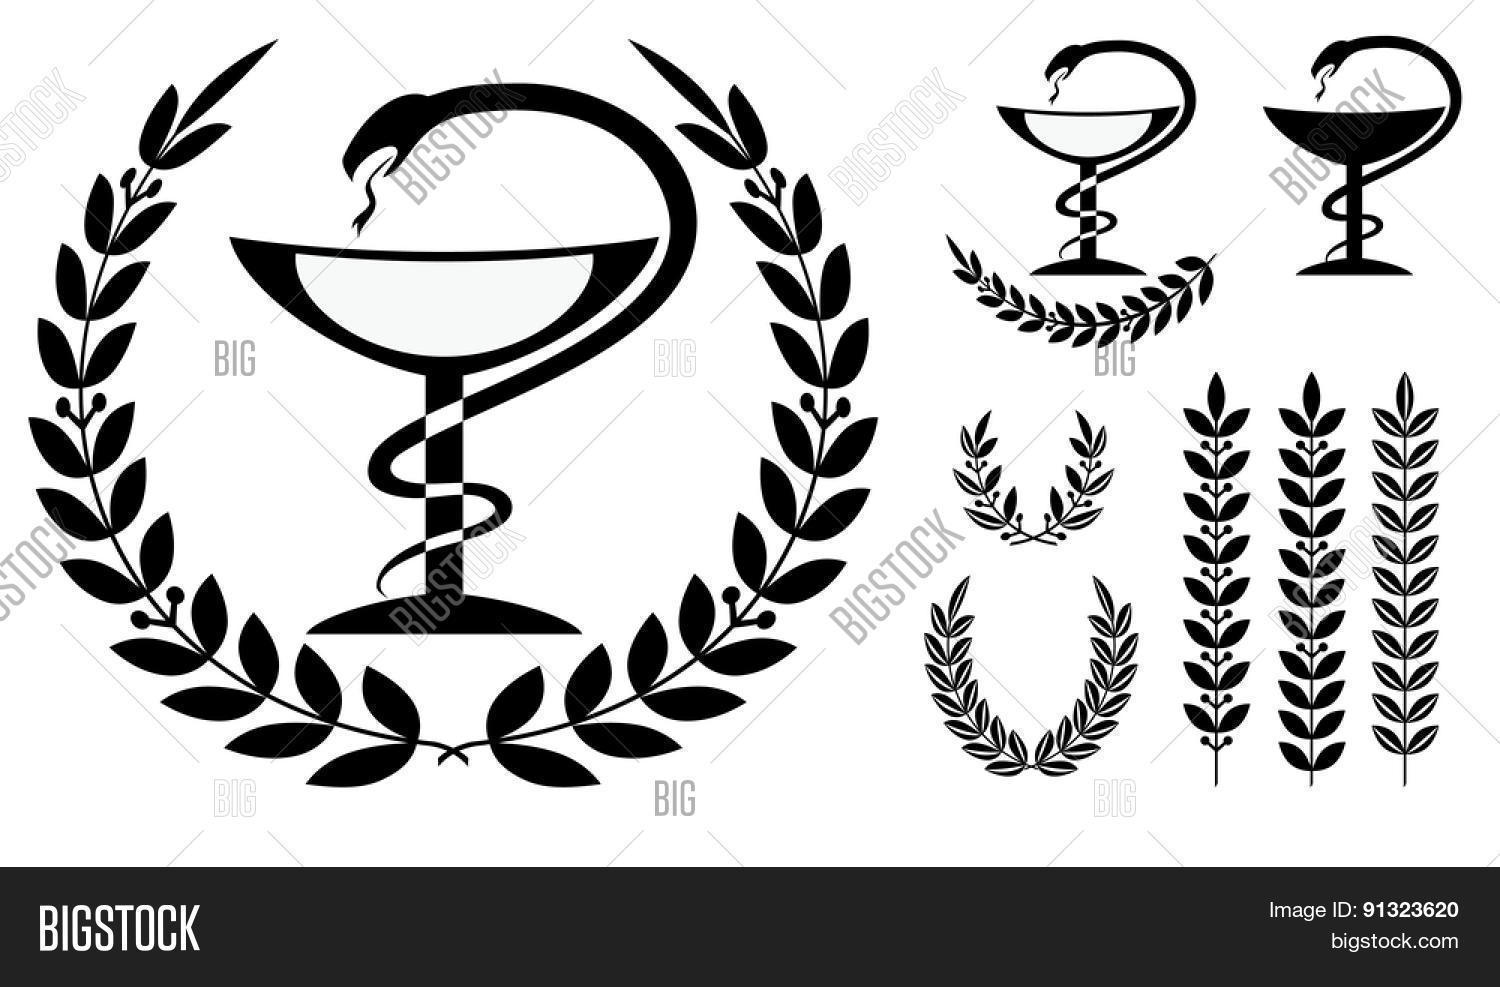 Pharmacy symbol medical snake cup vector photo bigstock pharmacy symbol medical snake and cup vector illustration buycottarizona Image collections